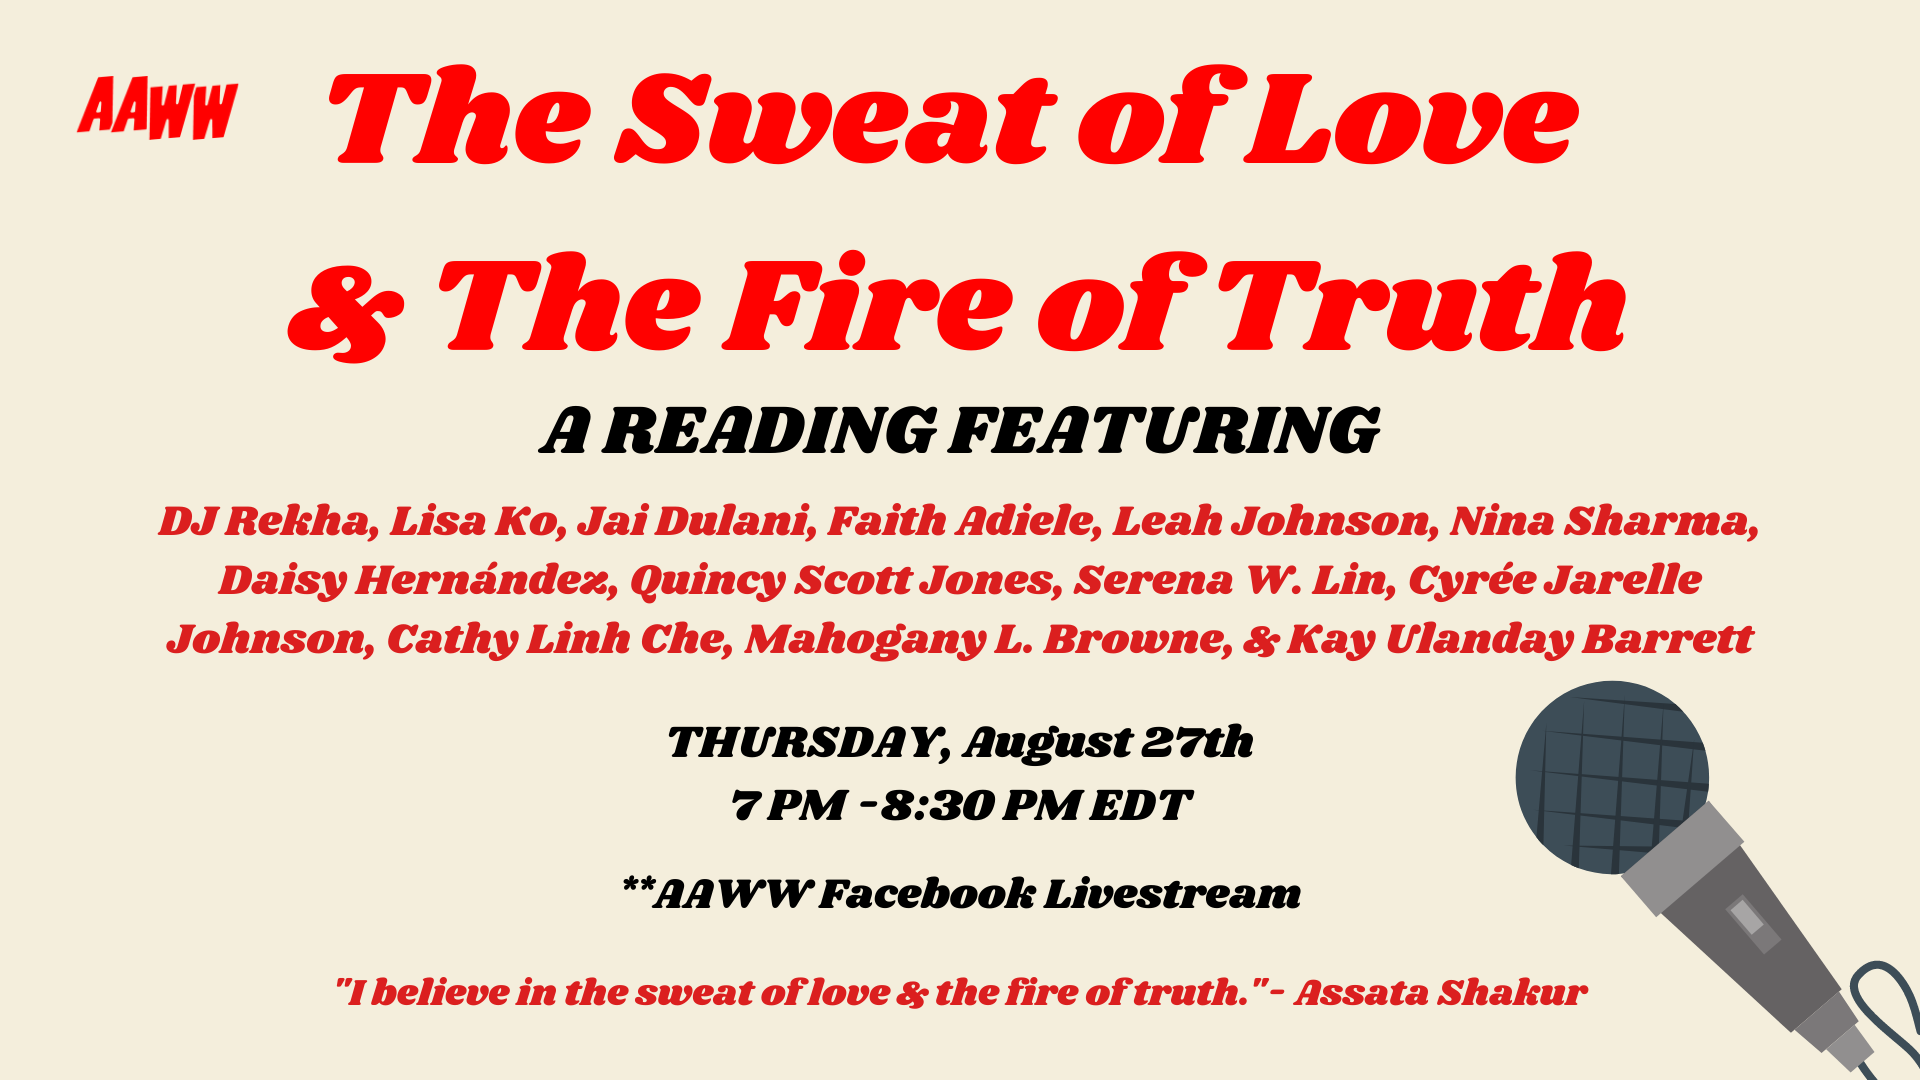 The Sweat of Love & The Fire of Truth: A Reading